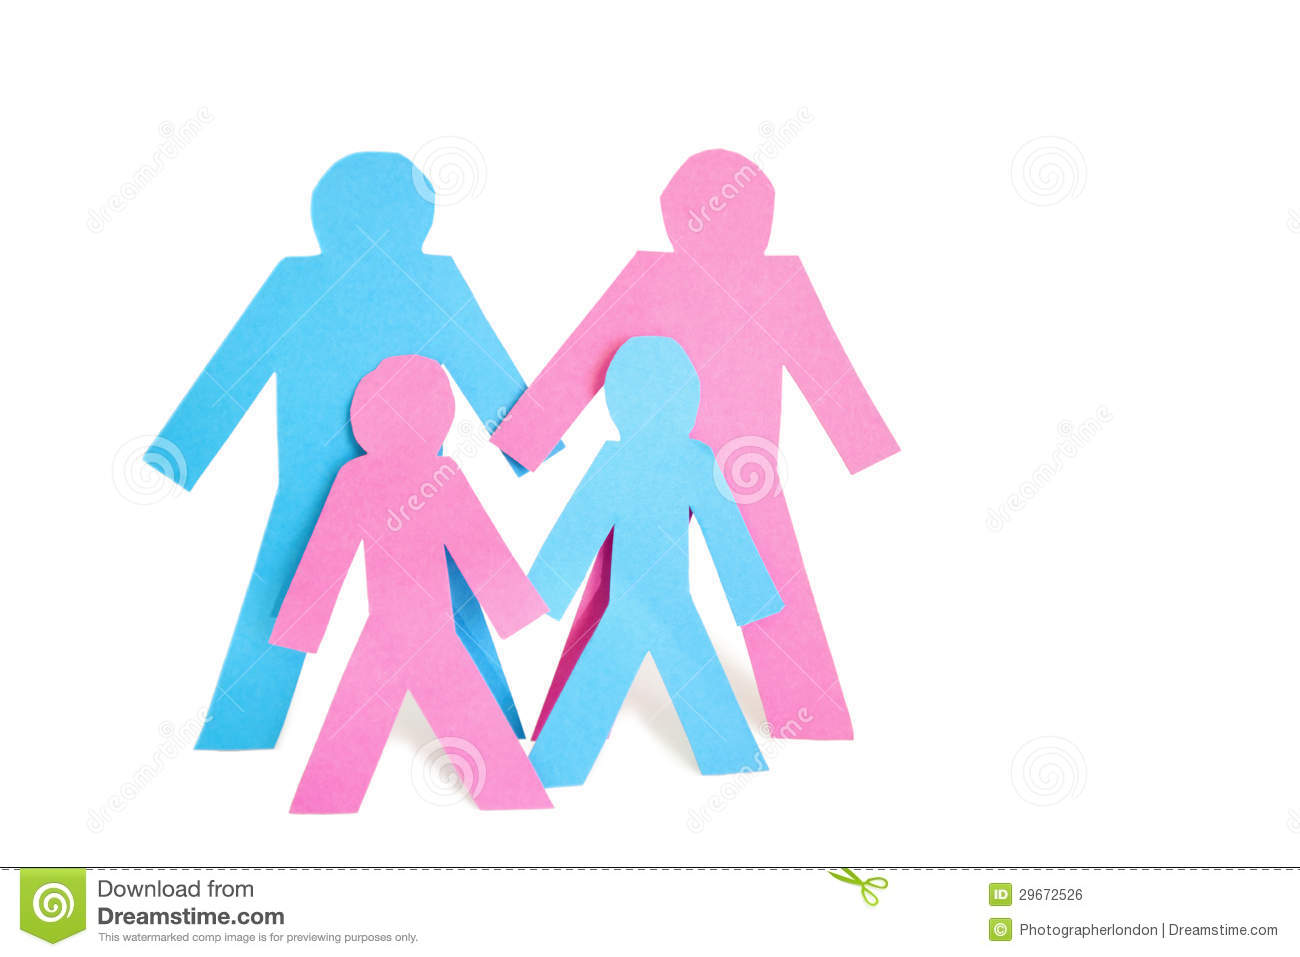 Conceptual image of paper cut outs representing family with two children over white background